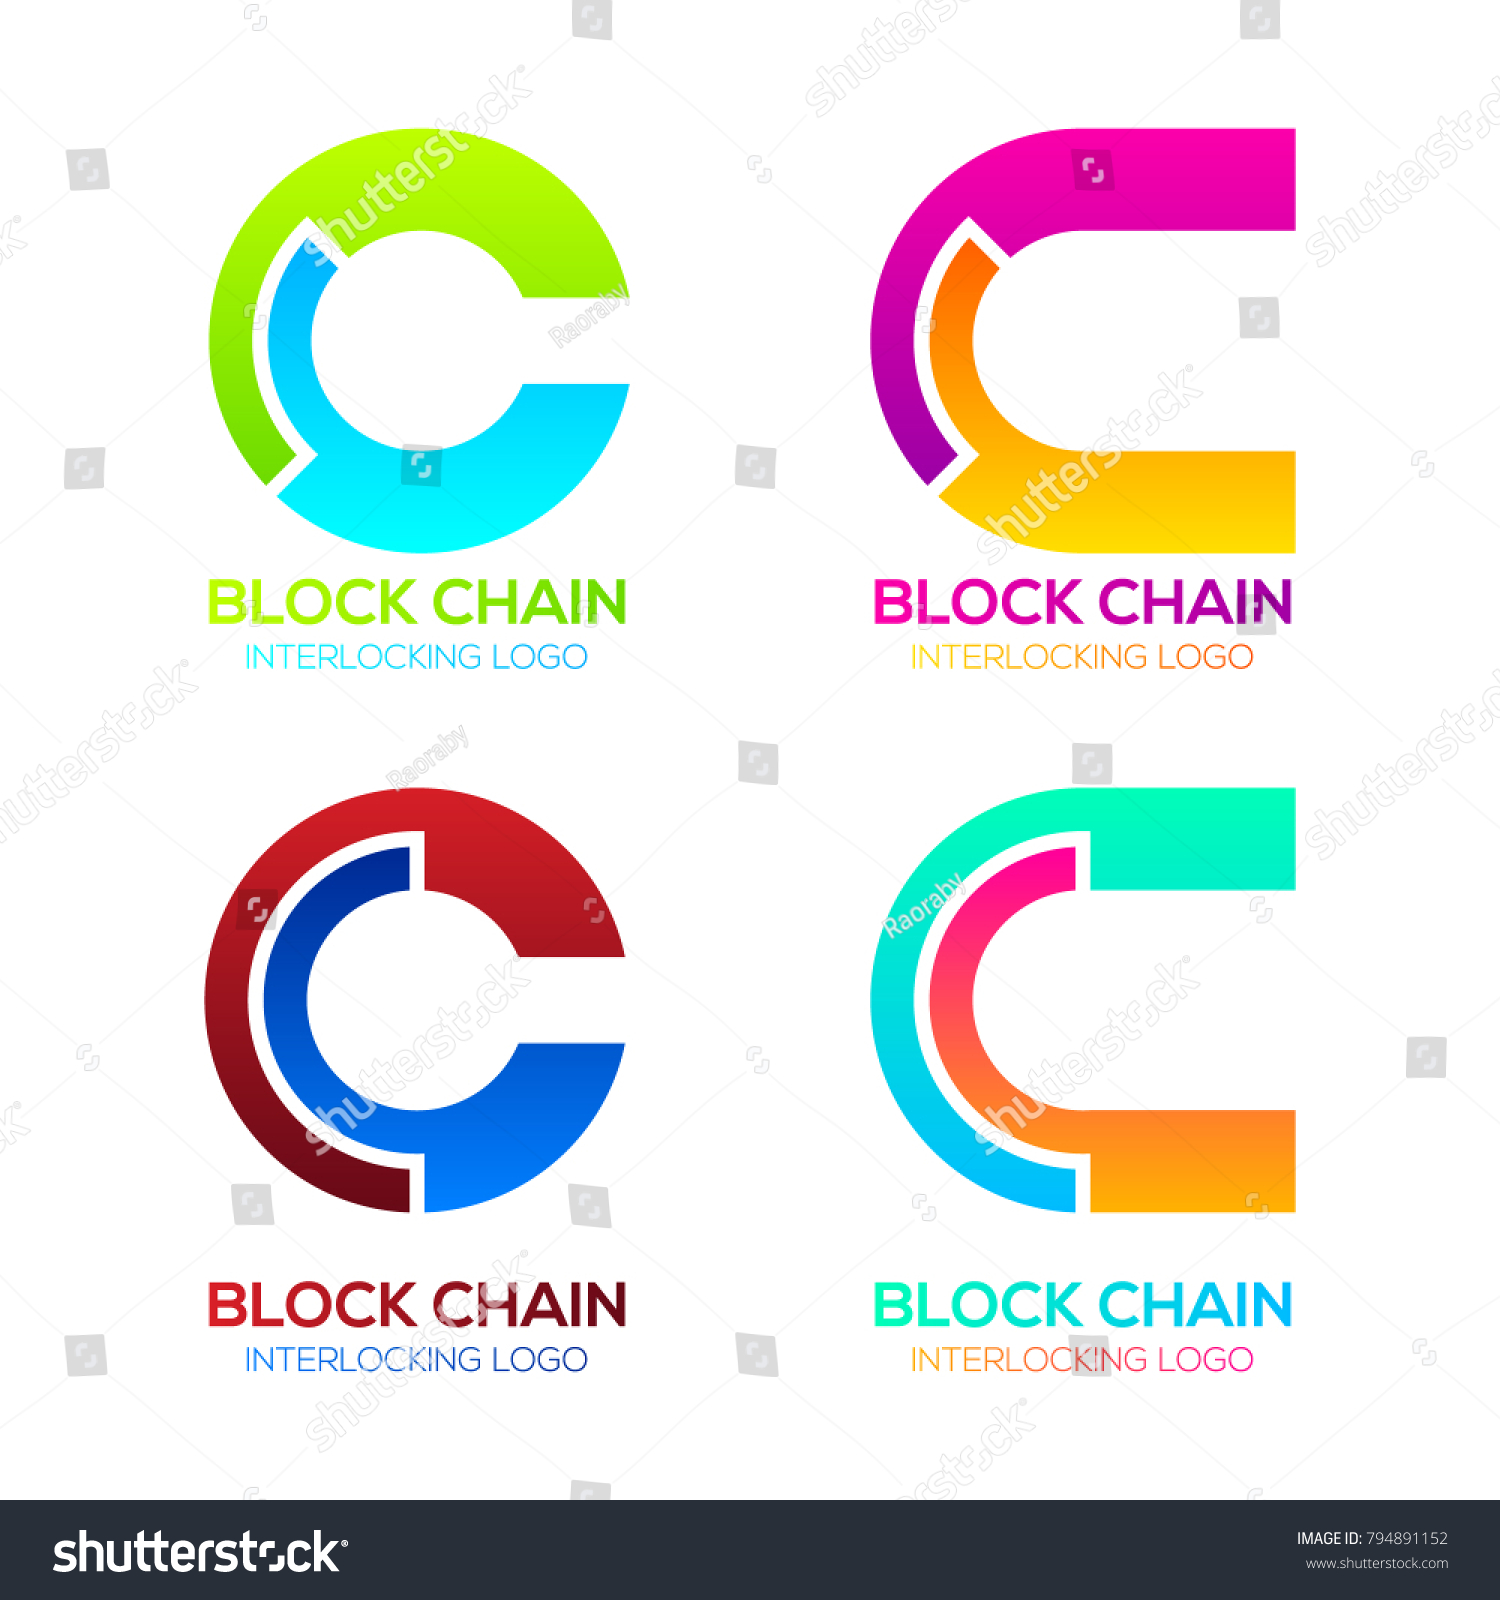 Letter C Logos Colorful Shape Blockchain Stock Vector